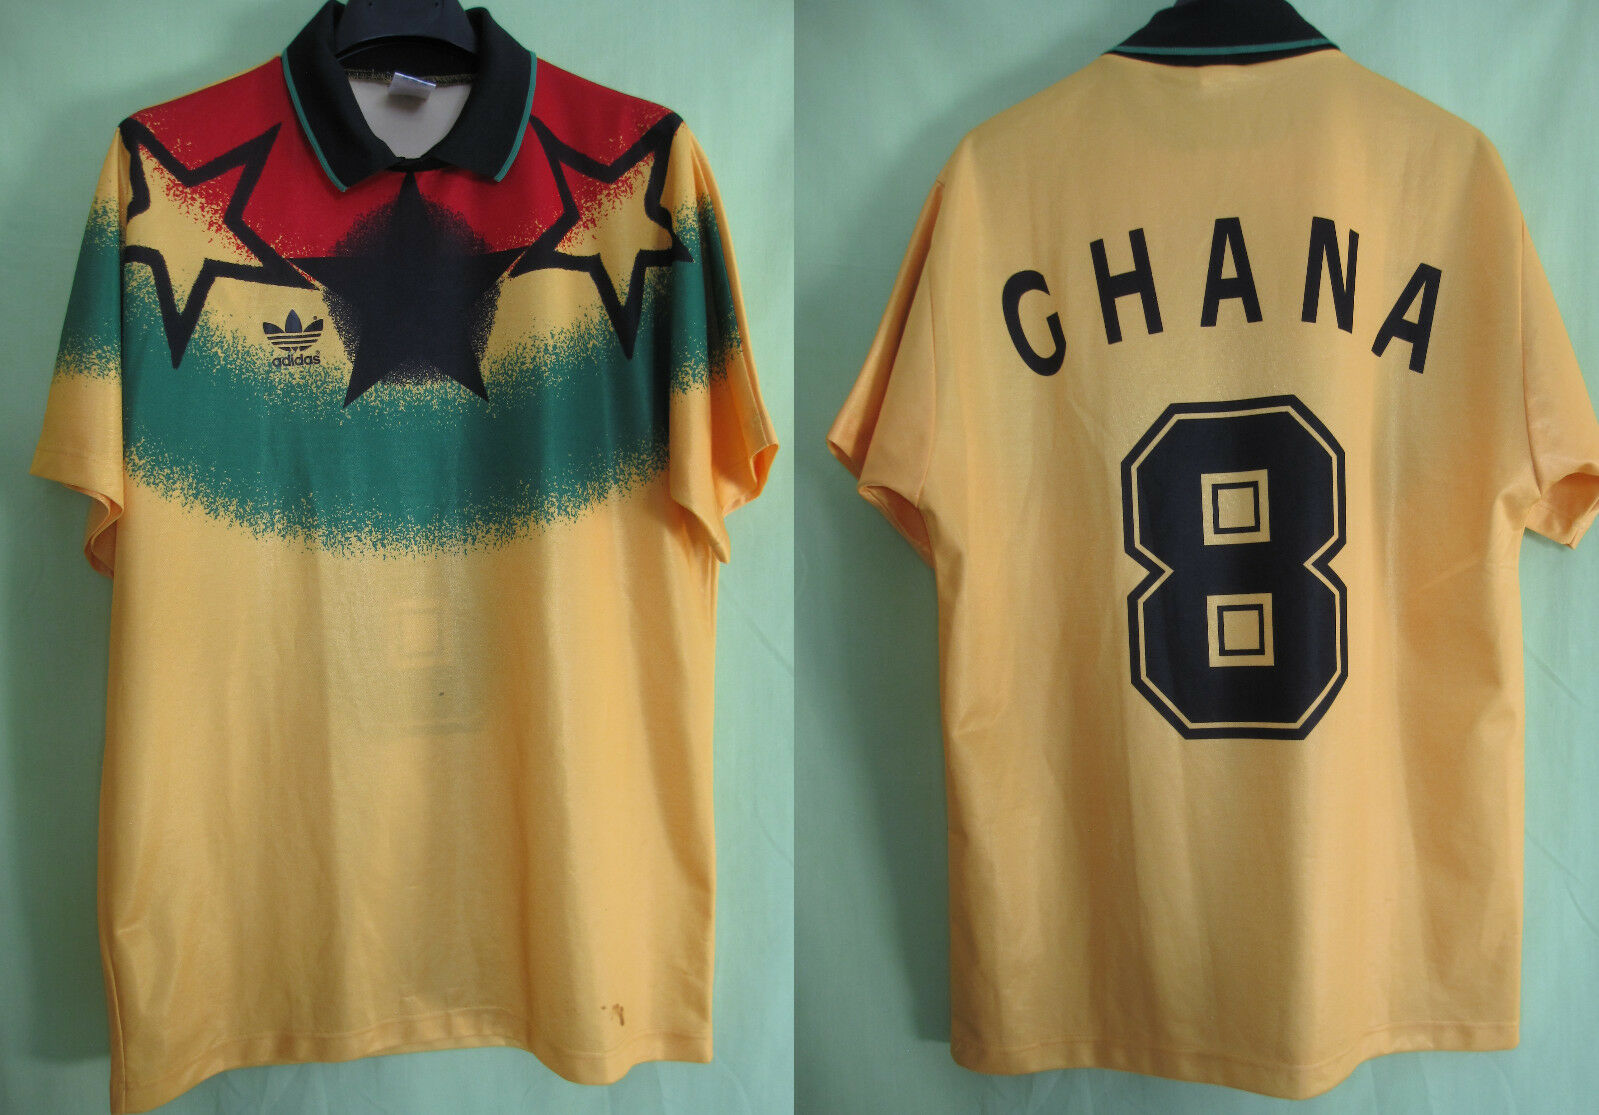 Maillot Ghana Porté n° 8 Adidas Domicile 1993 vintage Jersey Football - M